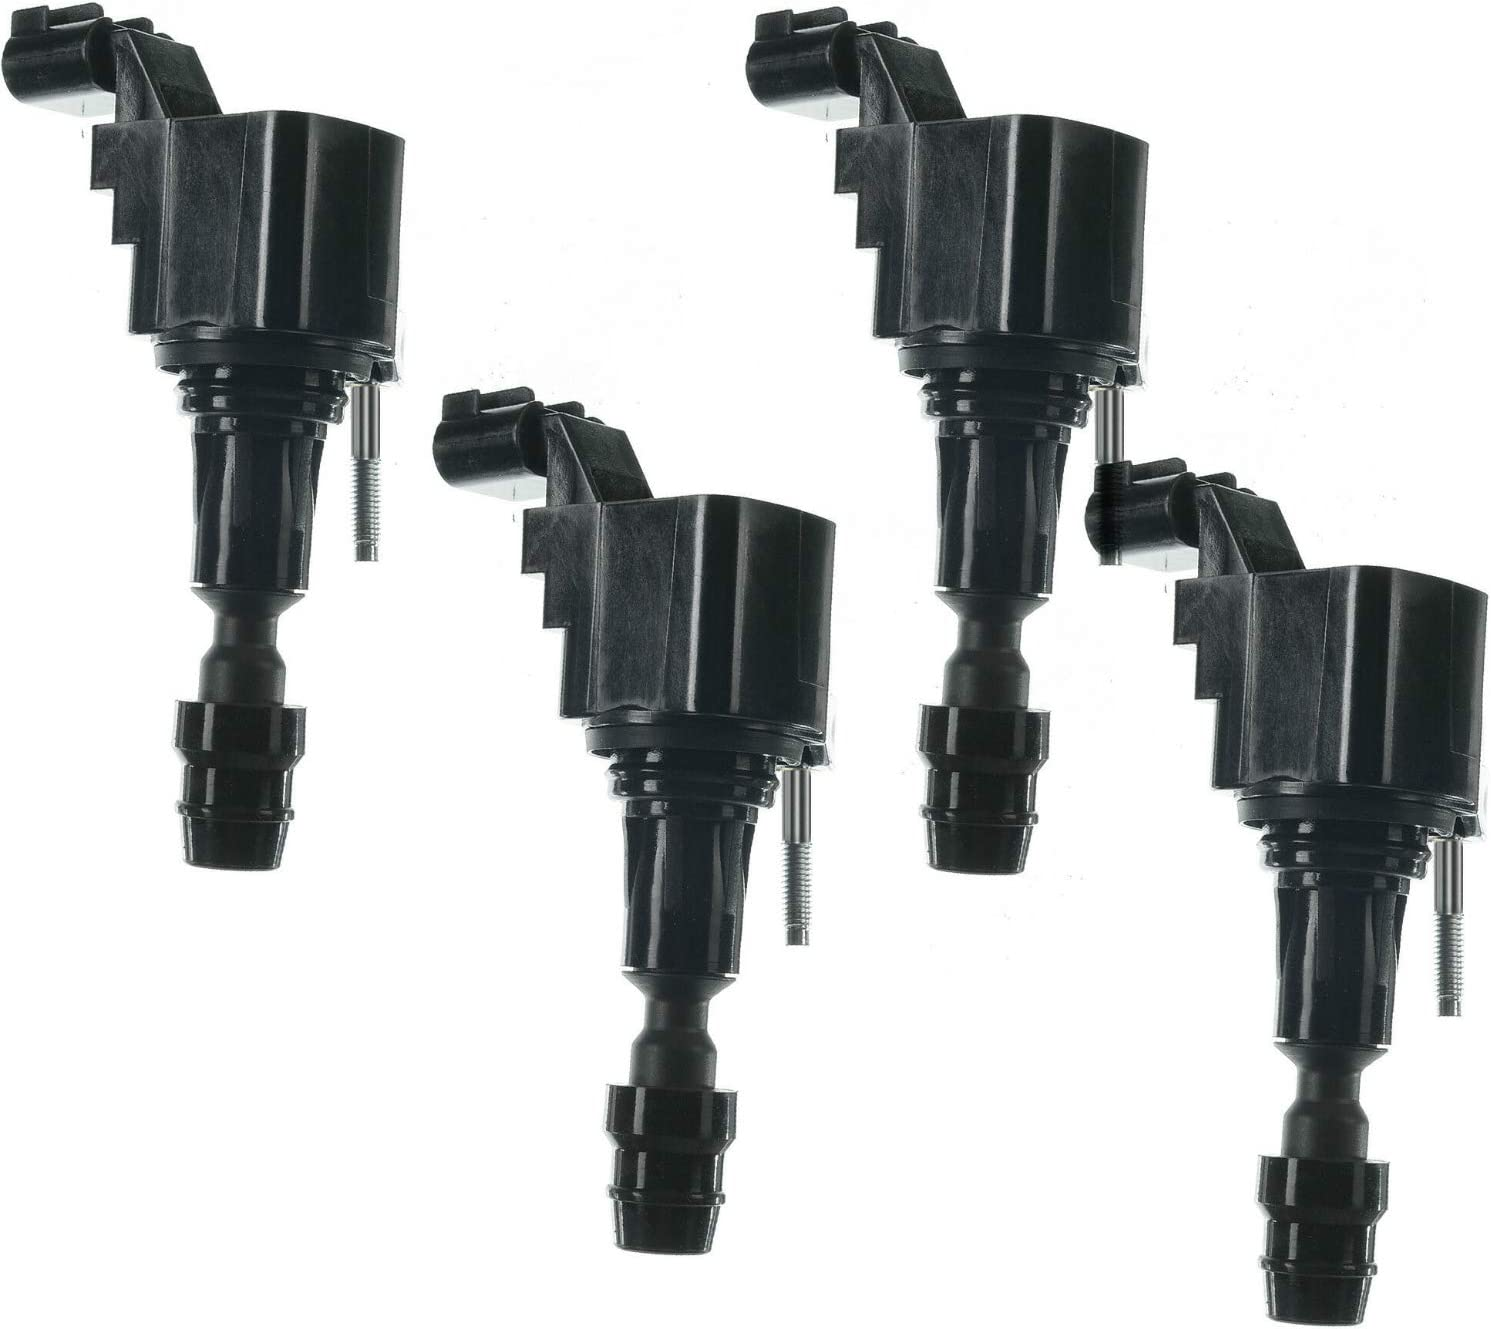 HHR 12638824 GMC Terrain OE# D522C Equinox Chevy Malibu 12578224 2006-2017 UF491 2.2L Pontiac G6 /& More Cobalt Ignition Coil Pack of 4 Replacement for 2.4L 2.0L Turbo